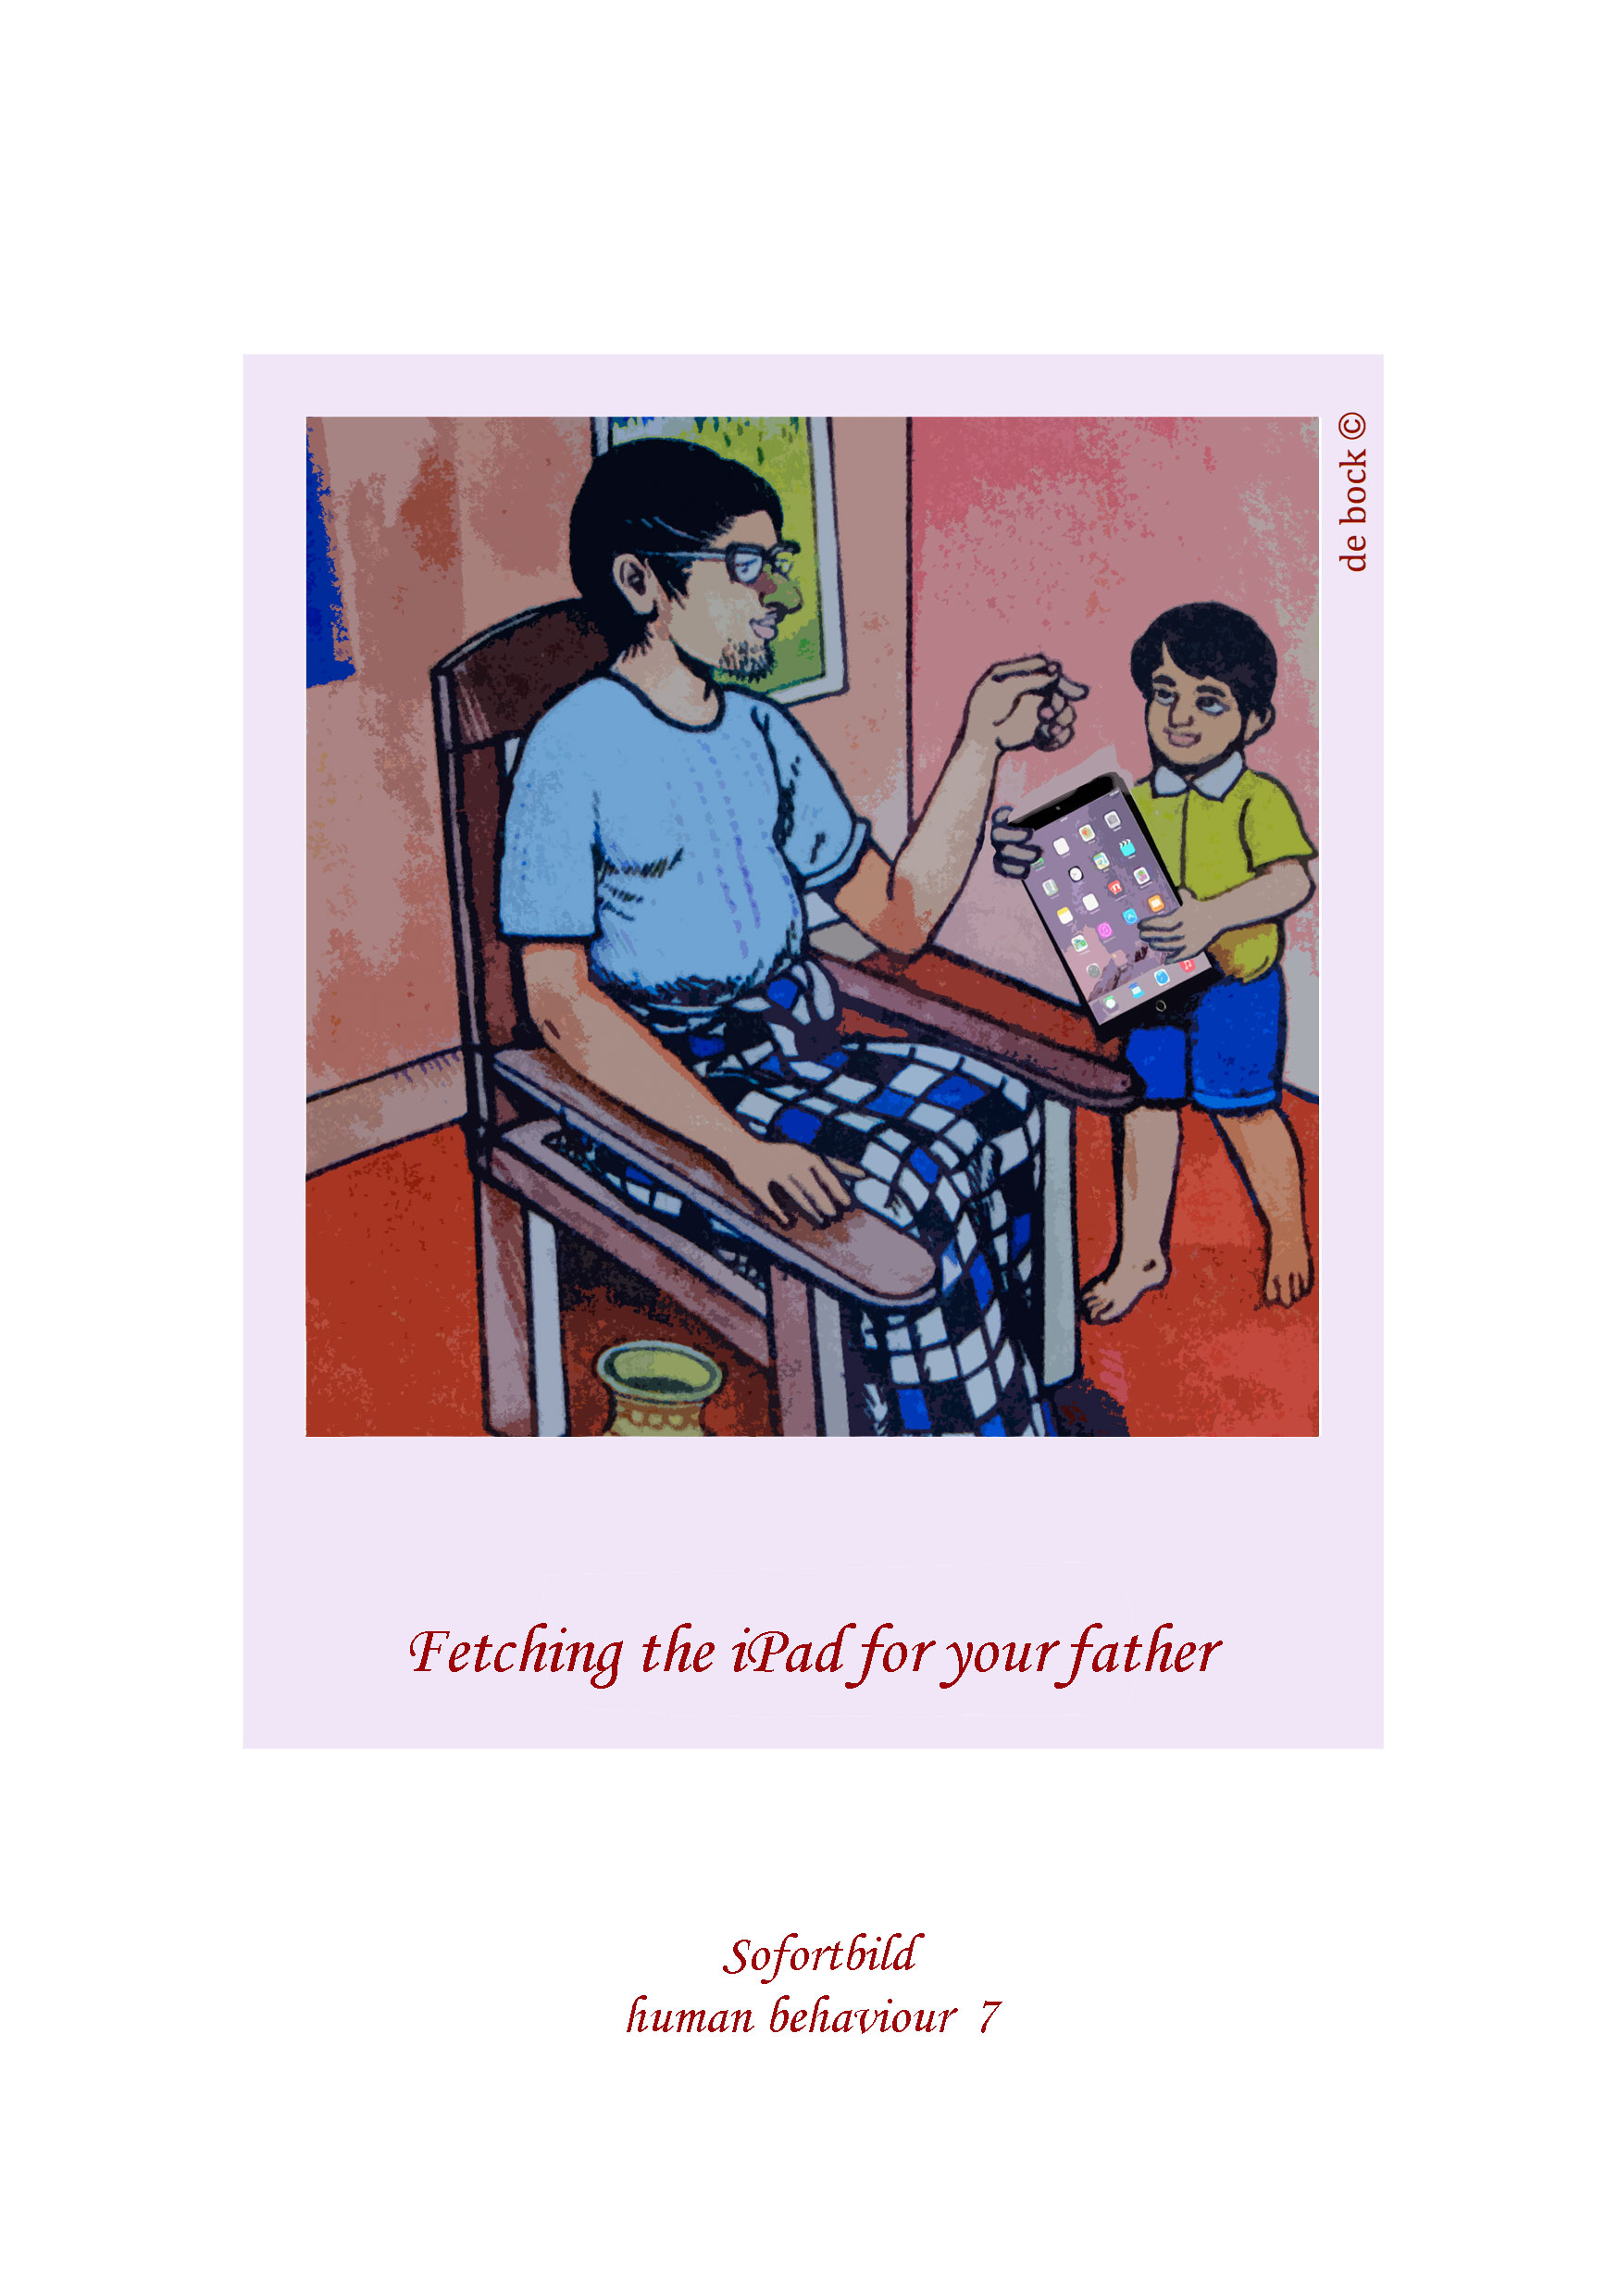 7_-Fetching-the-iPad-for-your-father.jpg